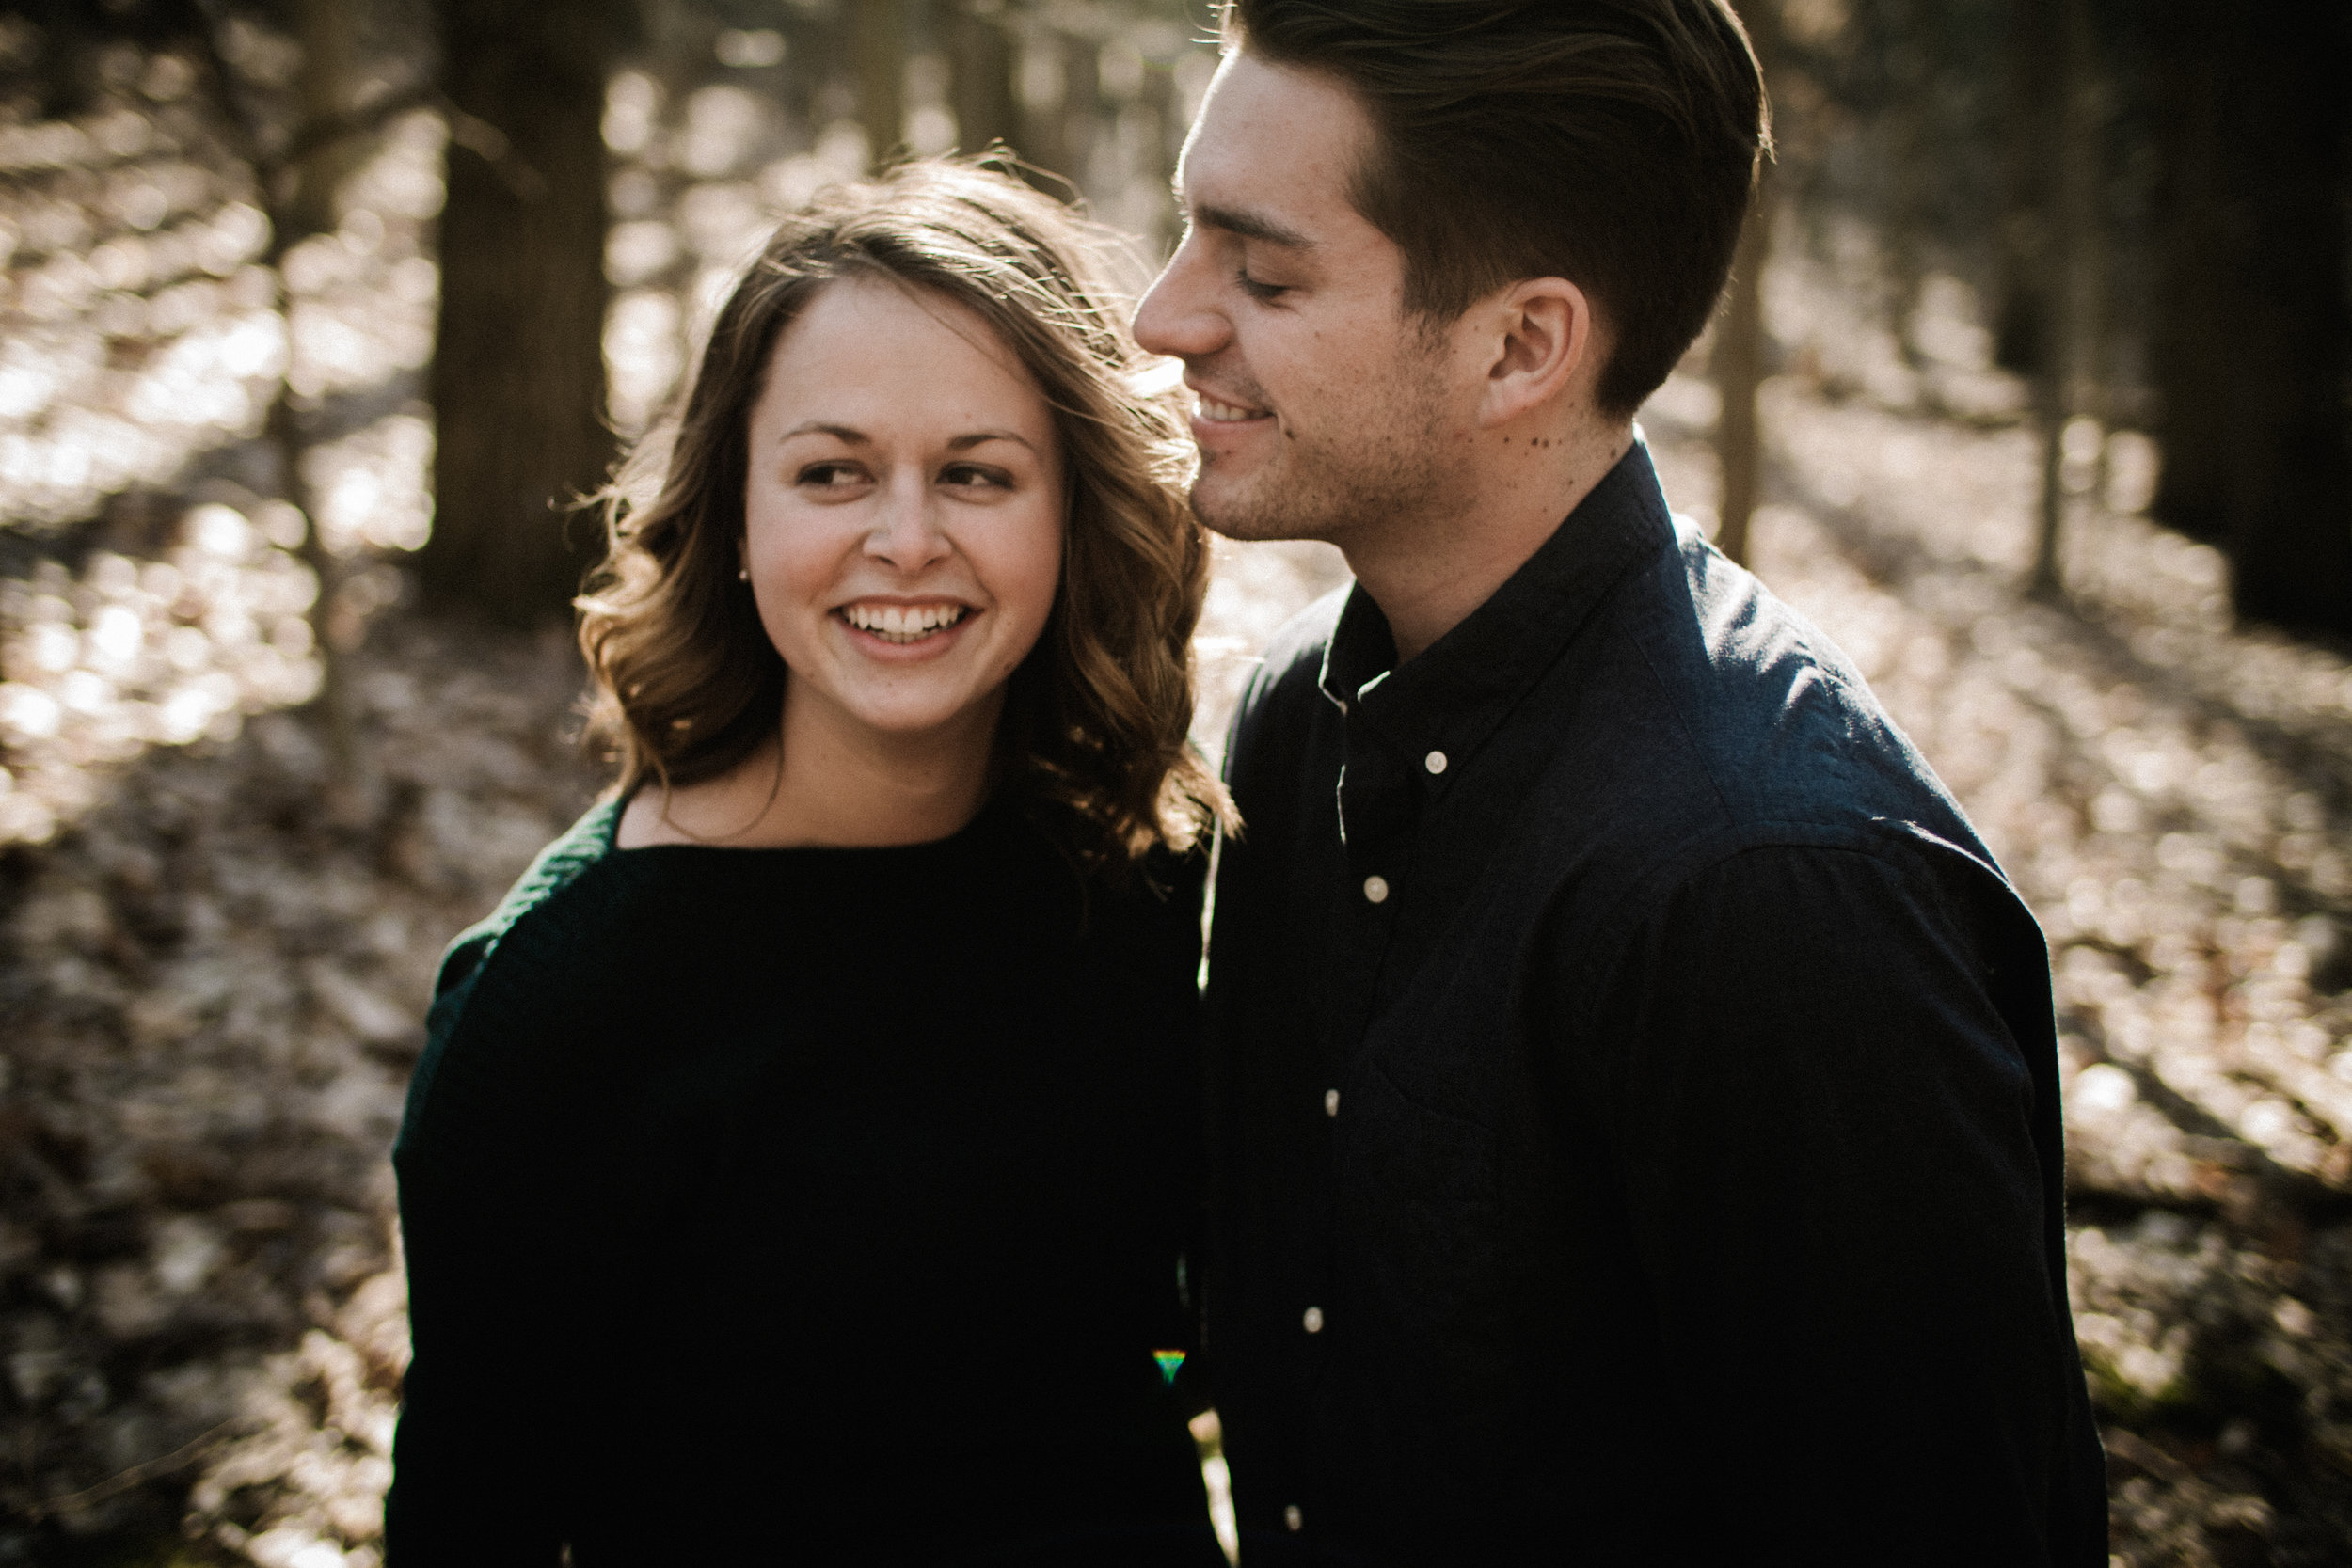 Noah-Paige-Lehmann-Shadow-Shine-Pictures-Grand-Rapids-Wedding-Photographers